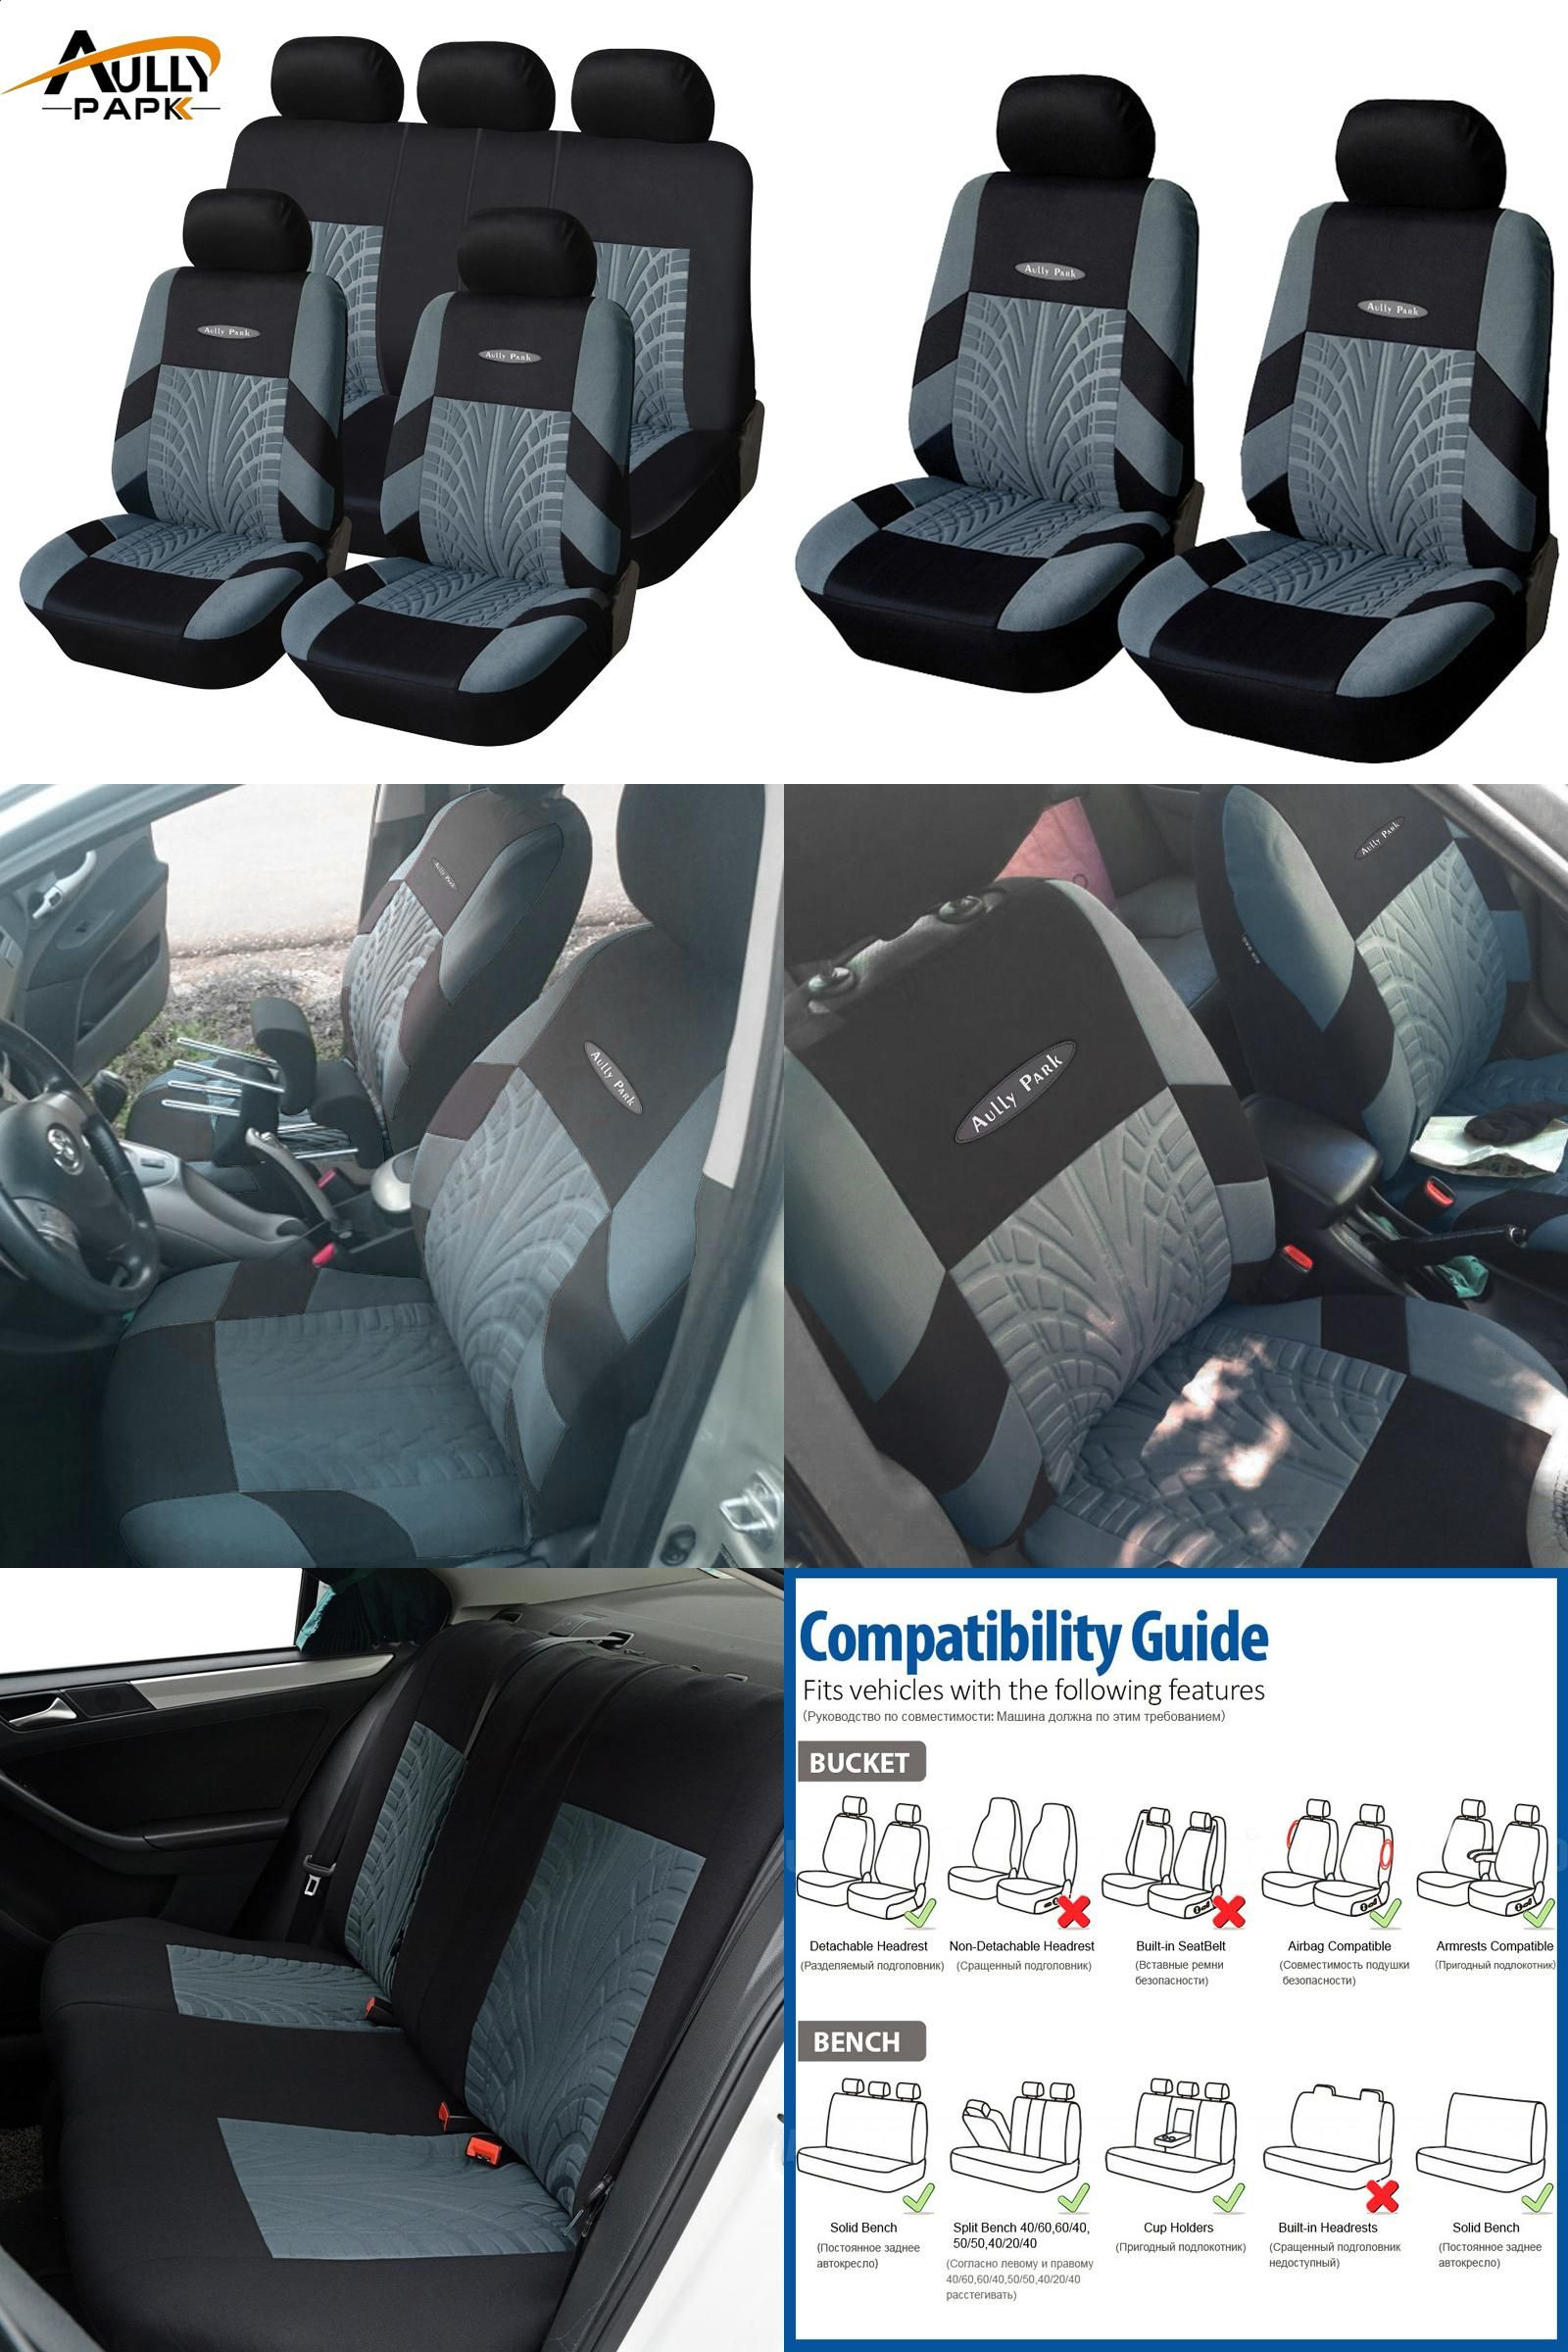 Visit To Buy AULLY PARK Car Seat Cover Polyester Fabric Universal Styling